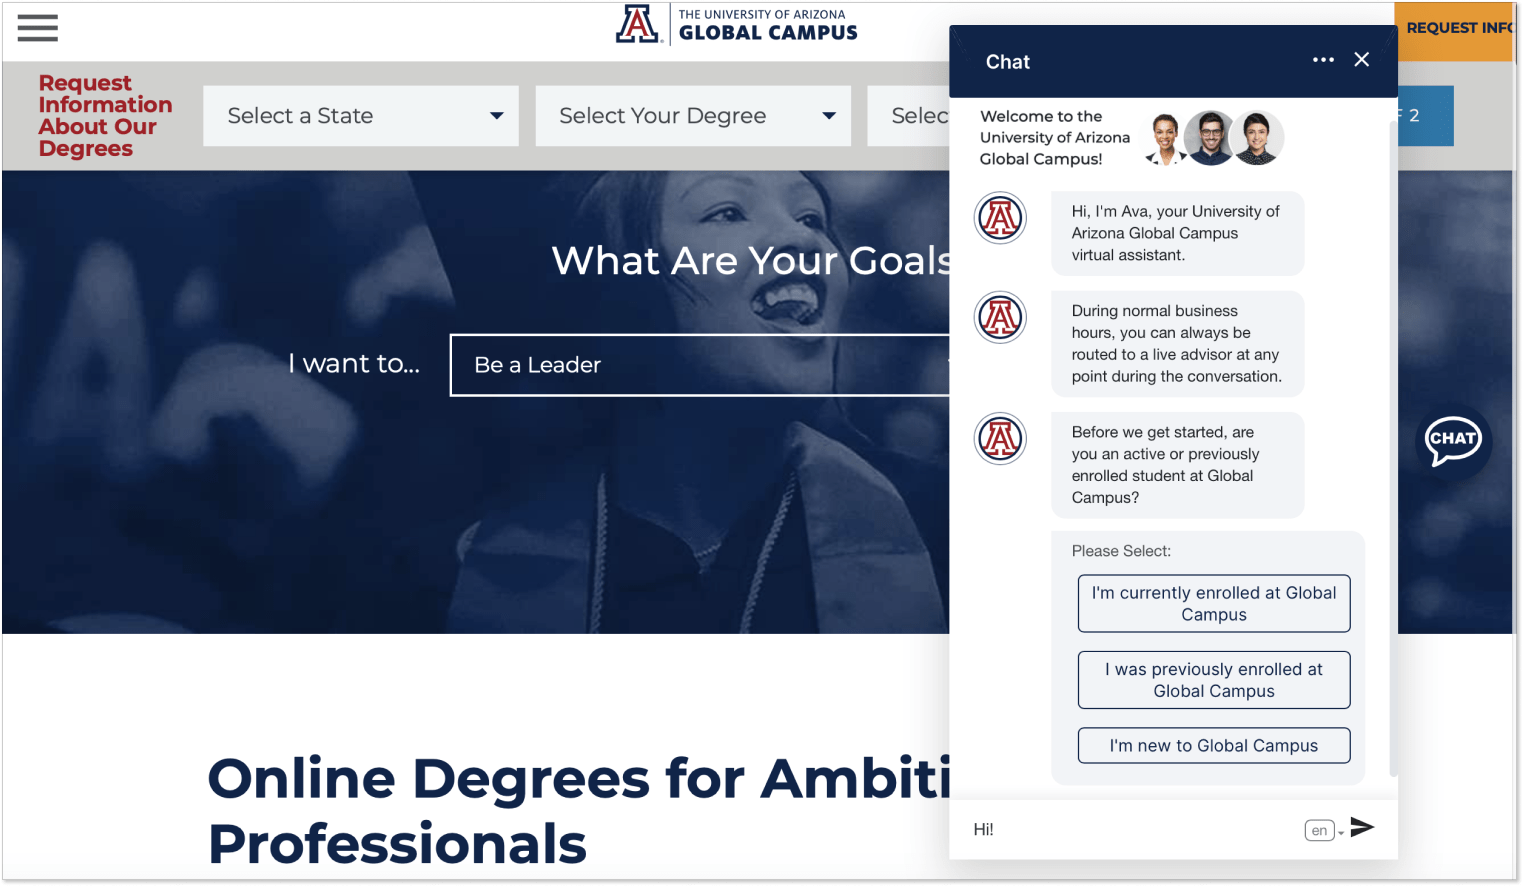 University of Arizona Global Campus page with live chat